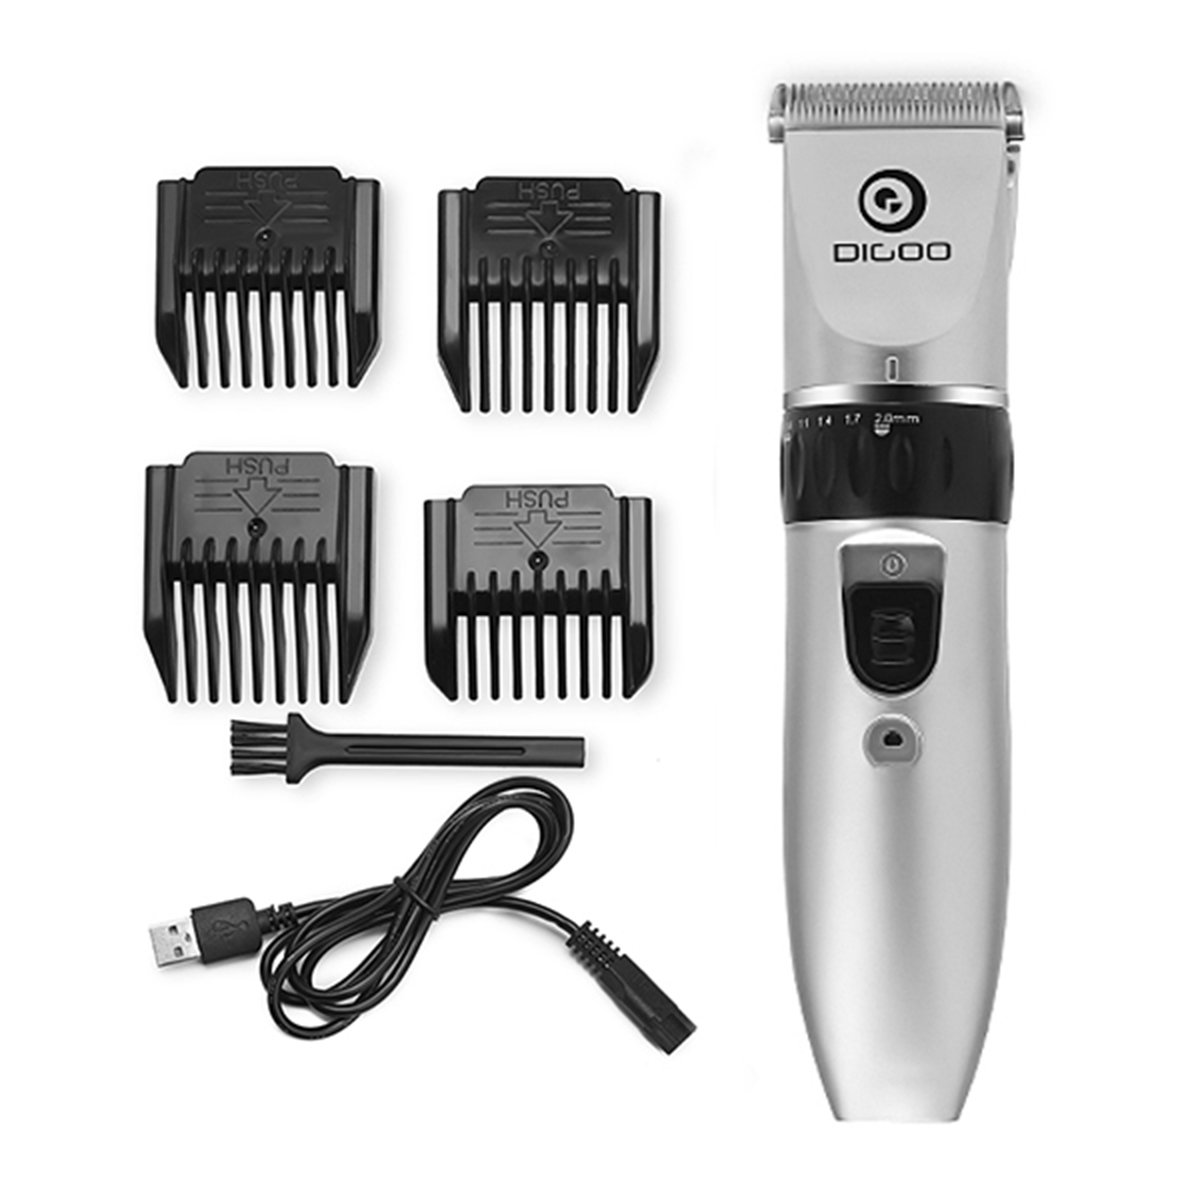 DIGOO Rechargeable Cordless Dogs Cats Grooming Clippers,Professional Pets Hair Trimmer, Pet Hair Clipper Grooming Kit with Low Noise,Comb Guides and USB Charging Cord for Dogs Cats and Other Animals by DIGOO (Image #8)